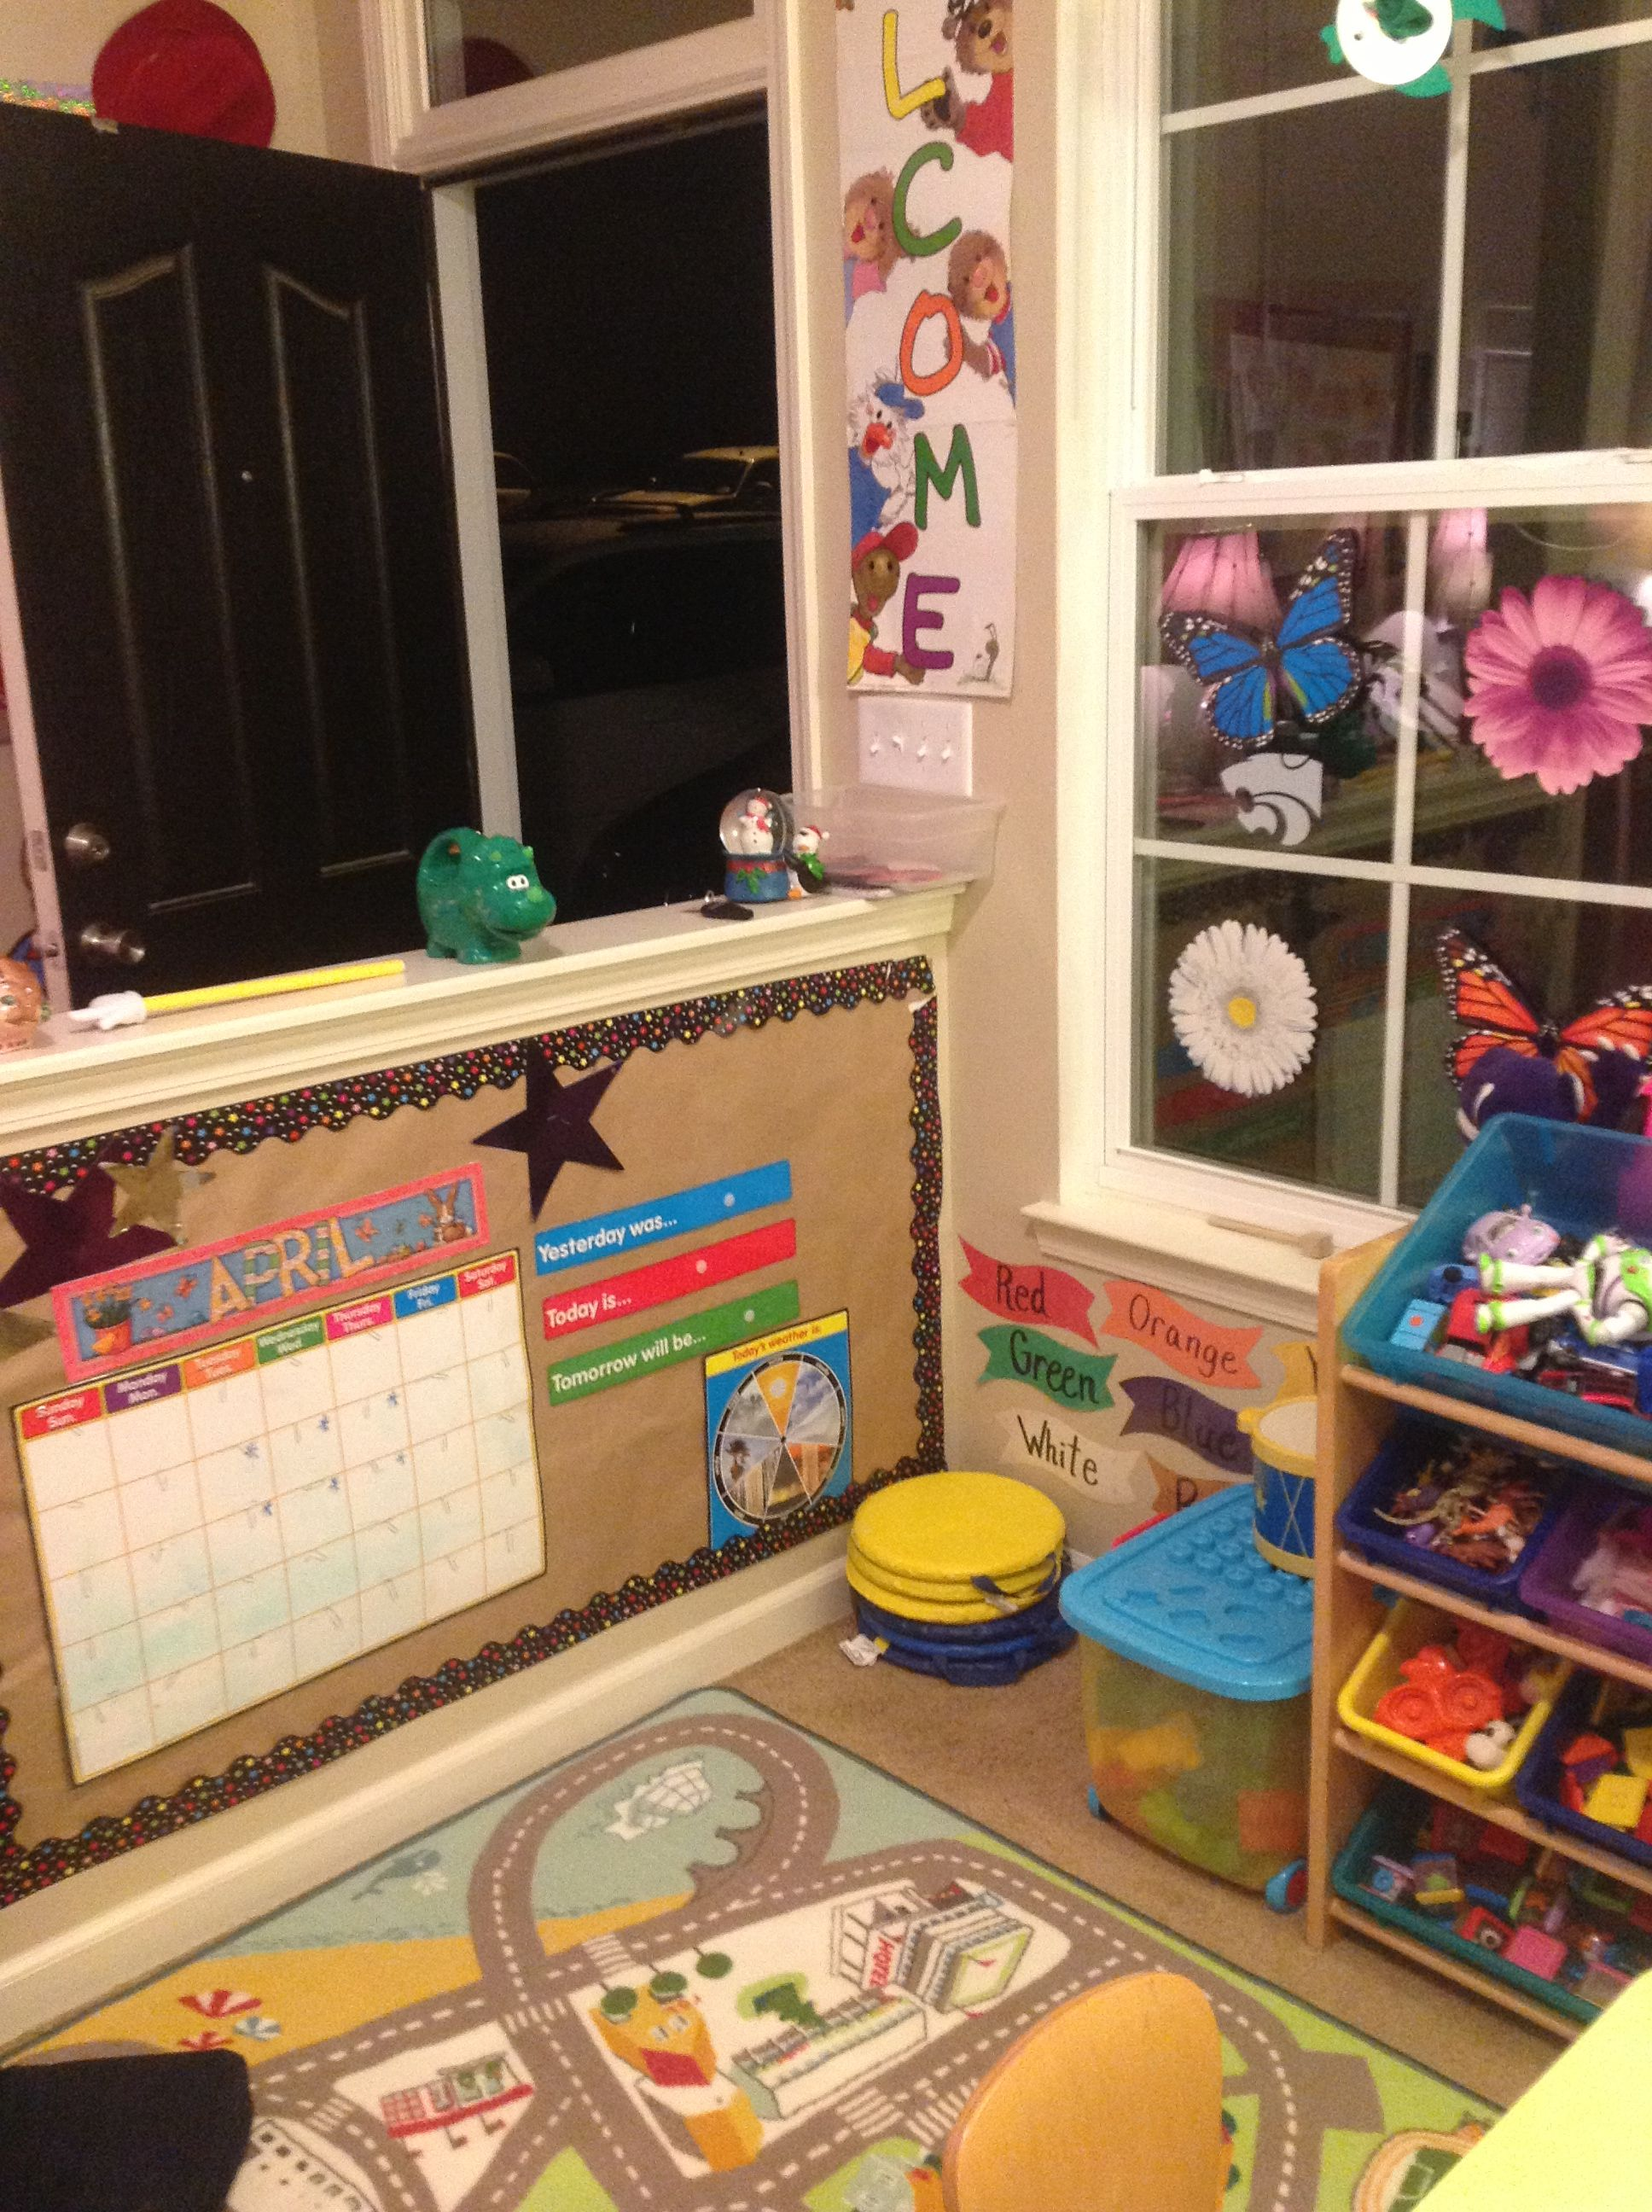 Small Room Home Daycare Layout Daycare Decor Daycare Setup Home Daycare